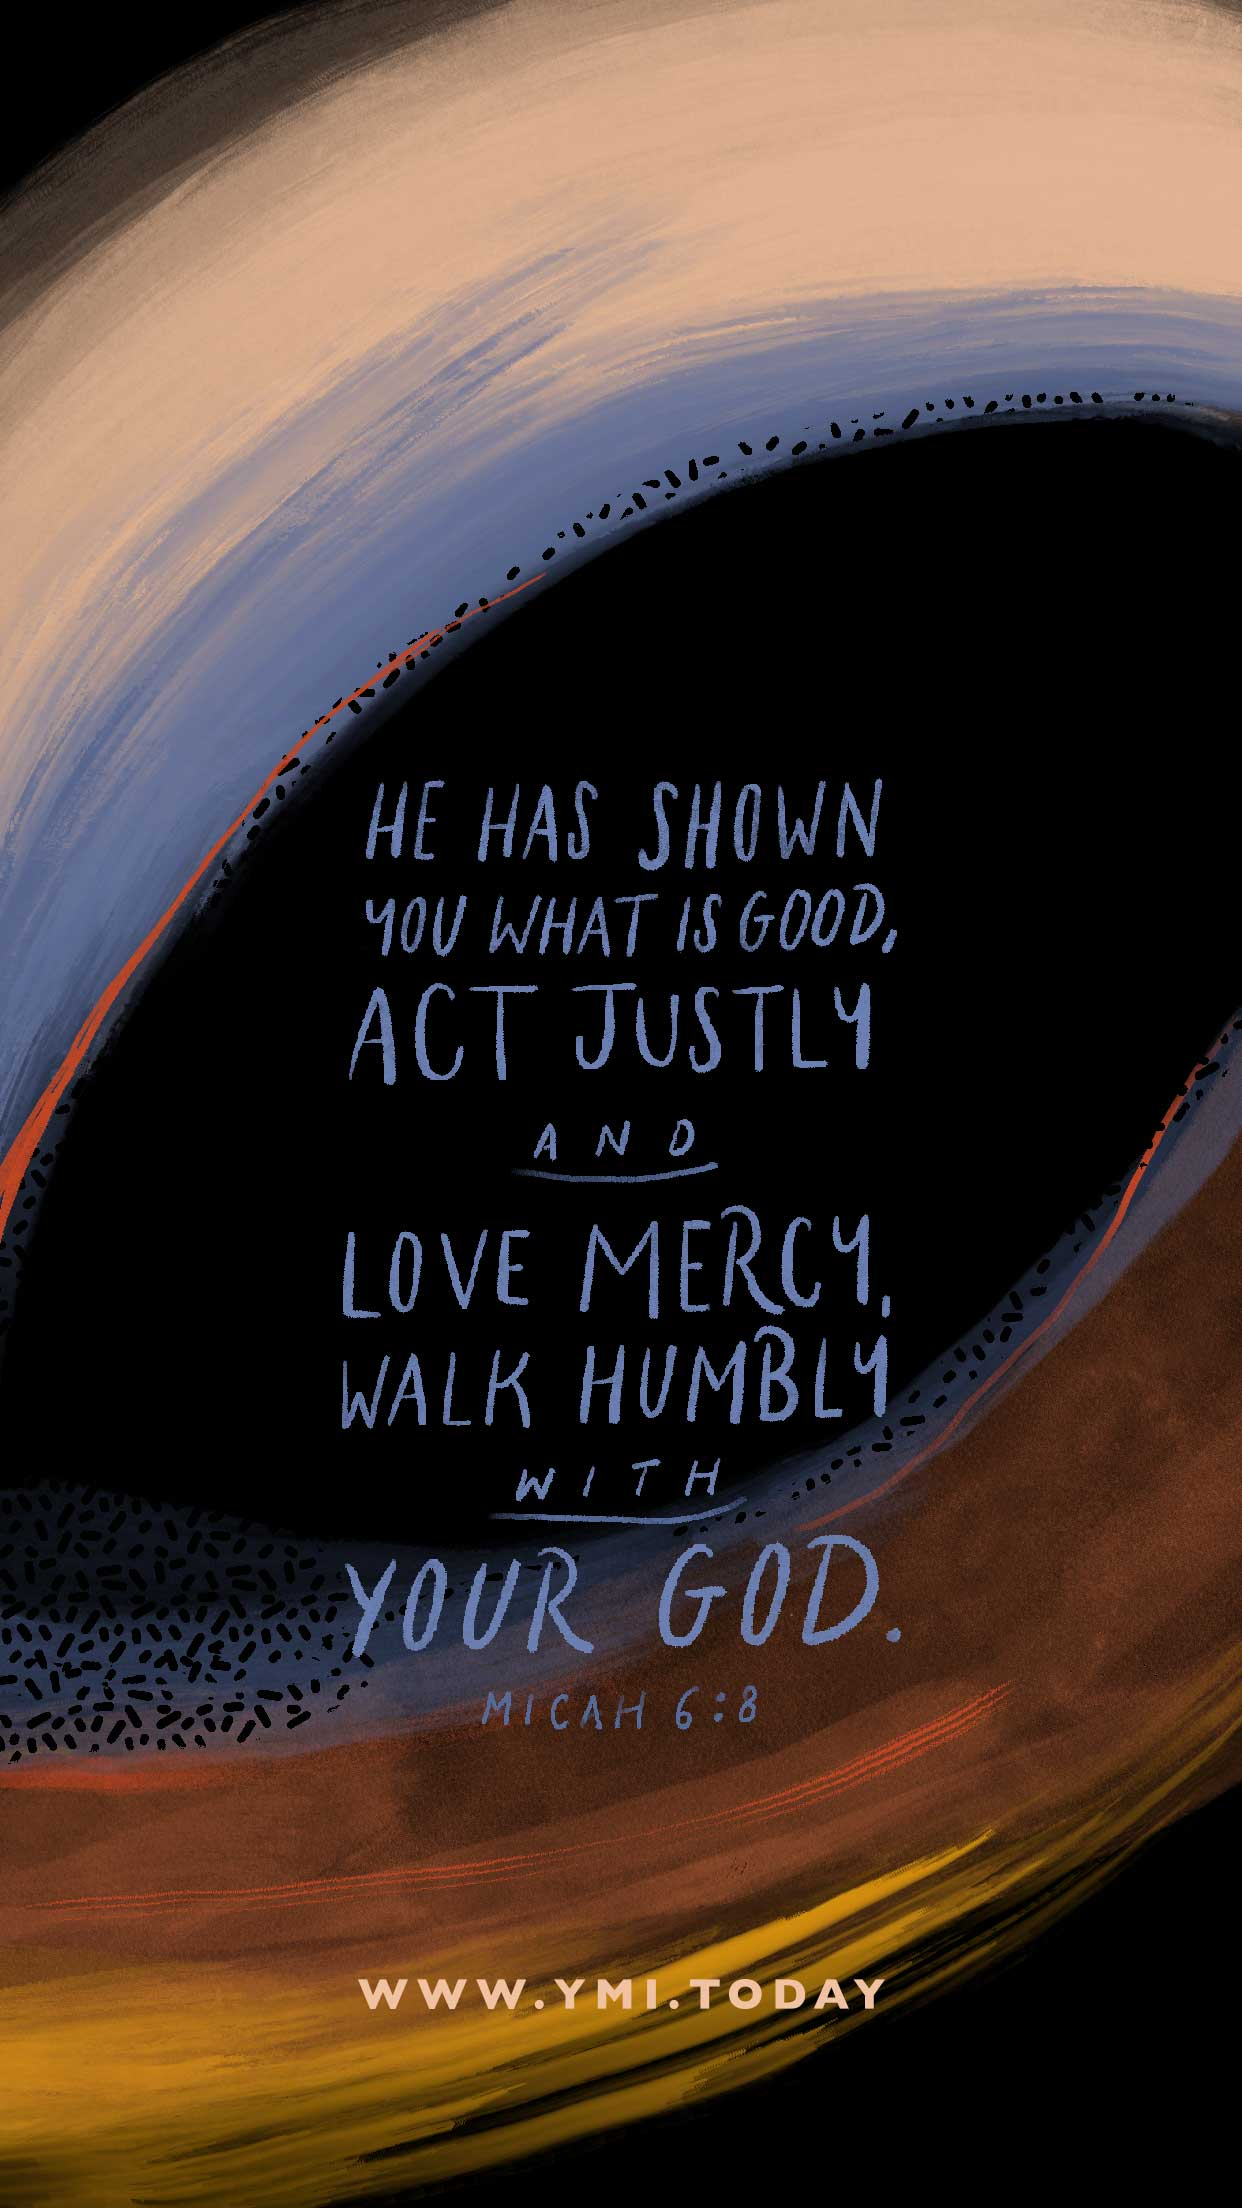 YMI July 2020 Phone Lockscreen - He has shown you what is good, act justly and love mercy, walk humbly with your God. - Micah 6:8